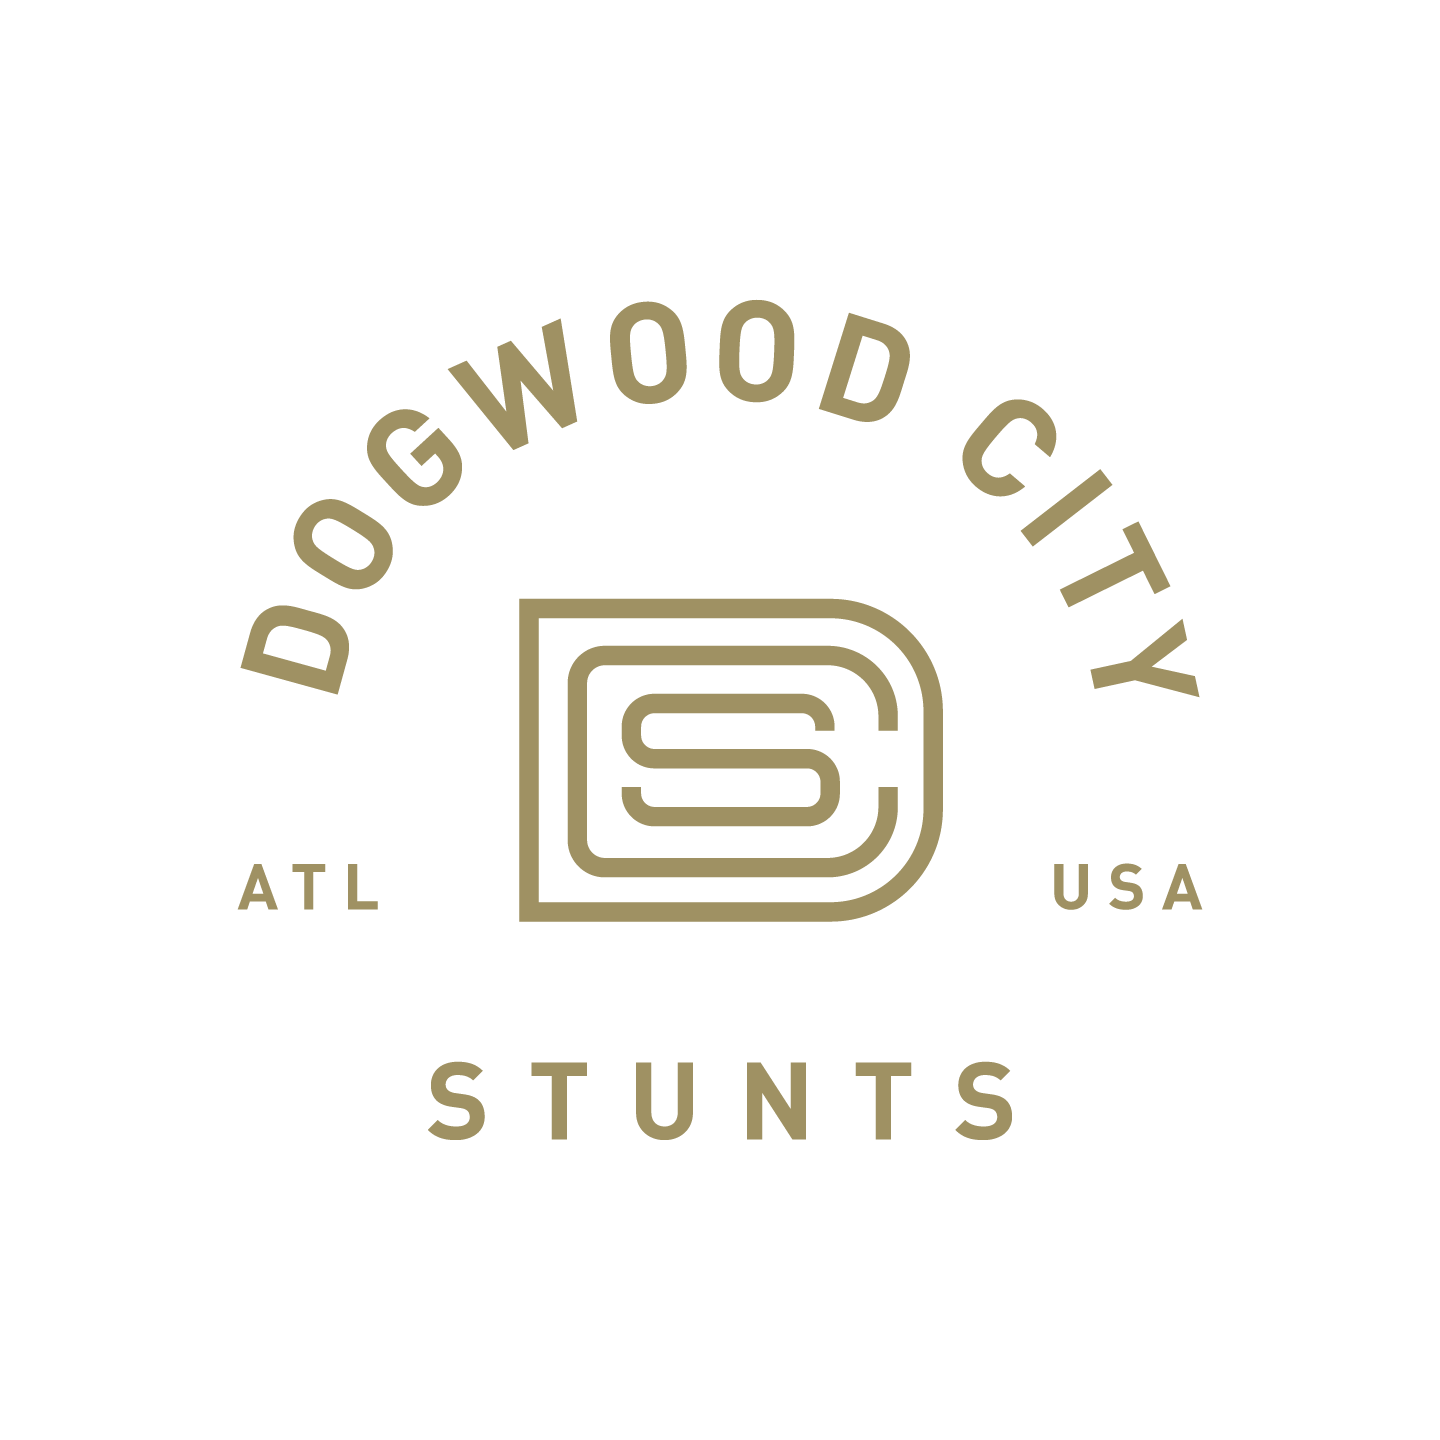 Dogwood City Stunts